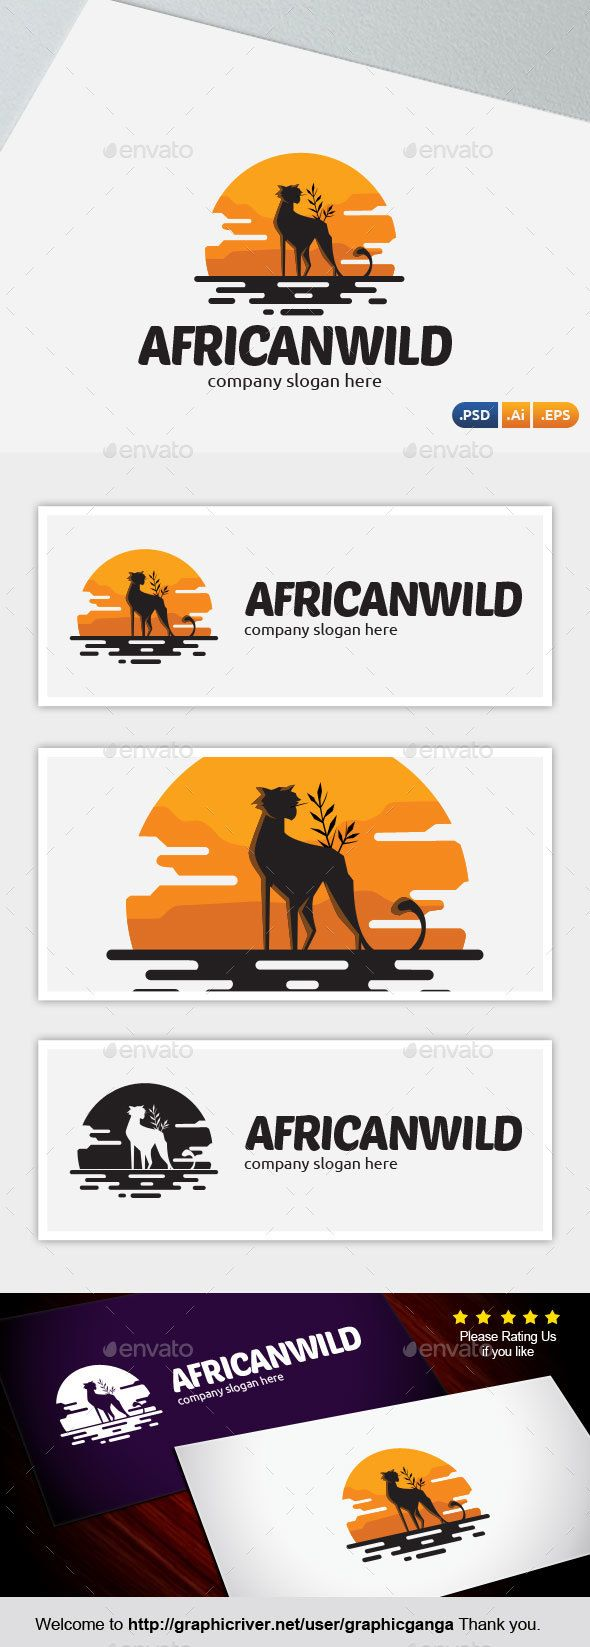 African Wild #african wild life #African tour & traveling Download : graphicrive...